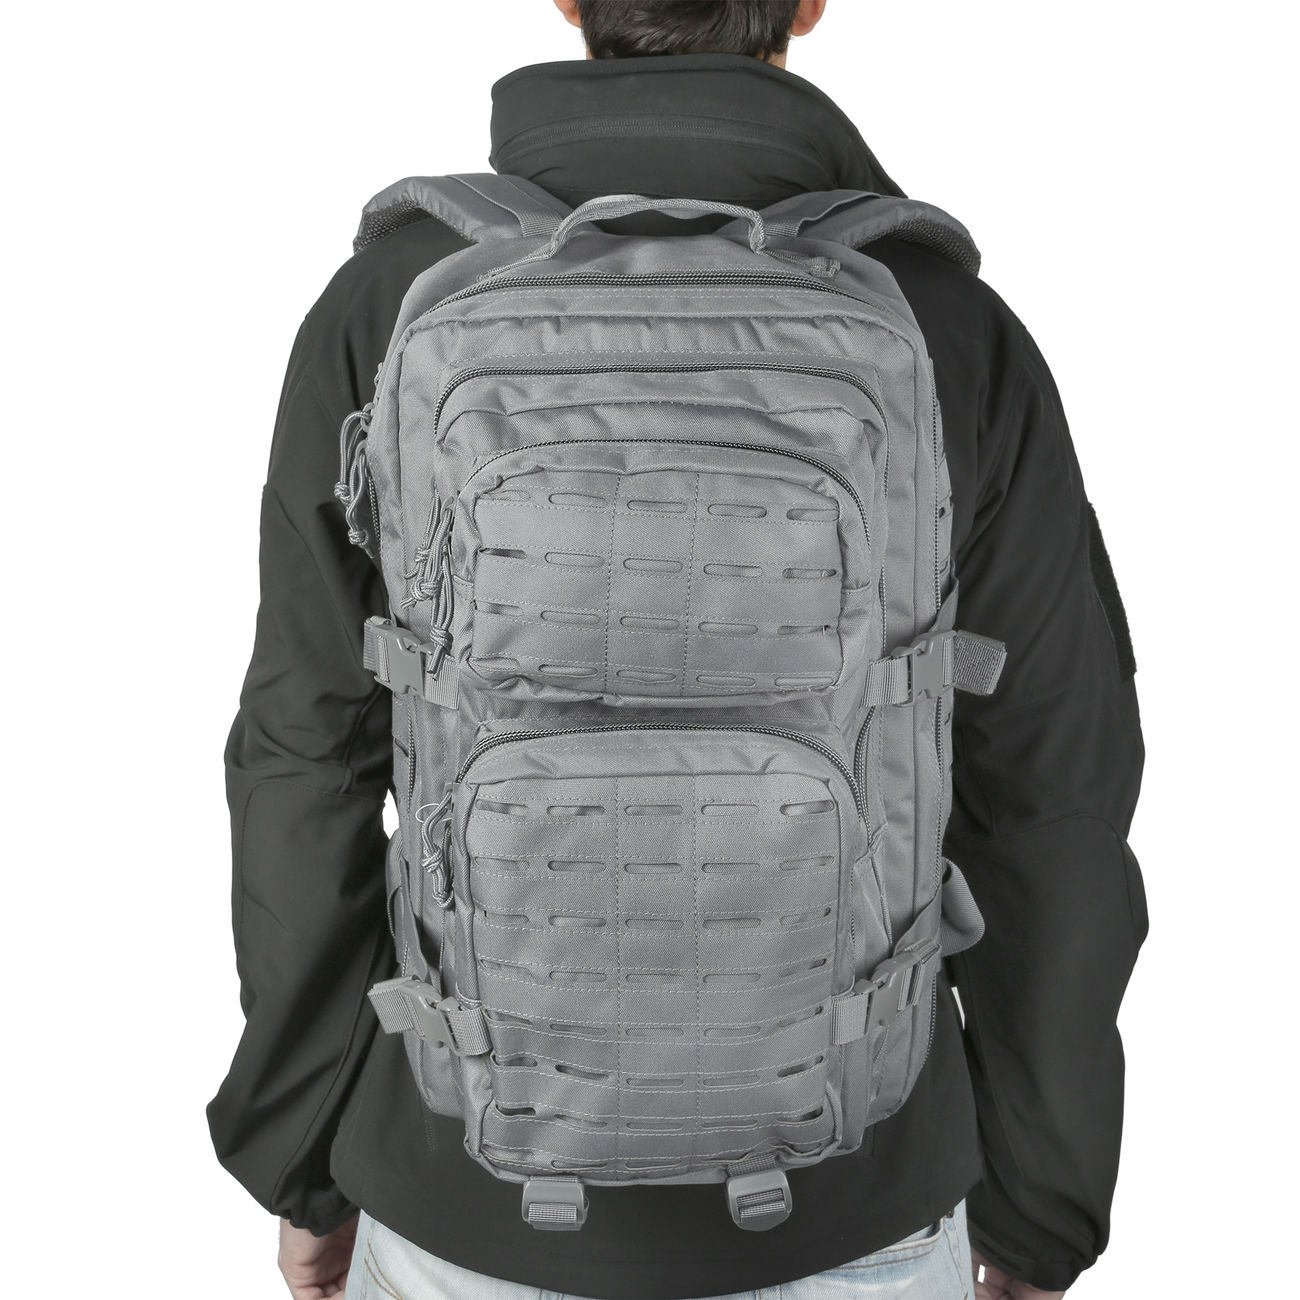 Mil-Tec Rucksack US Assault Pack Laser Cut large 36L Urban grey 4